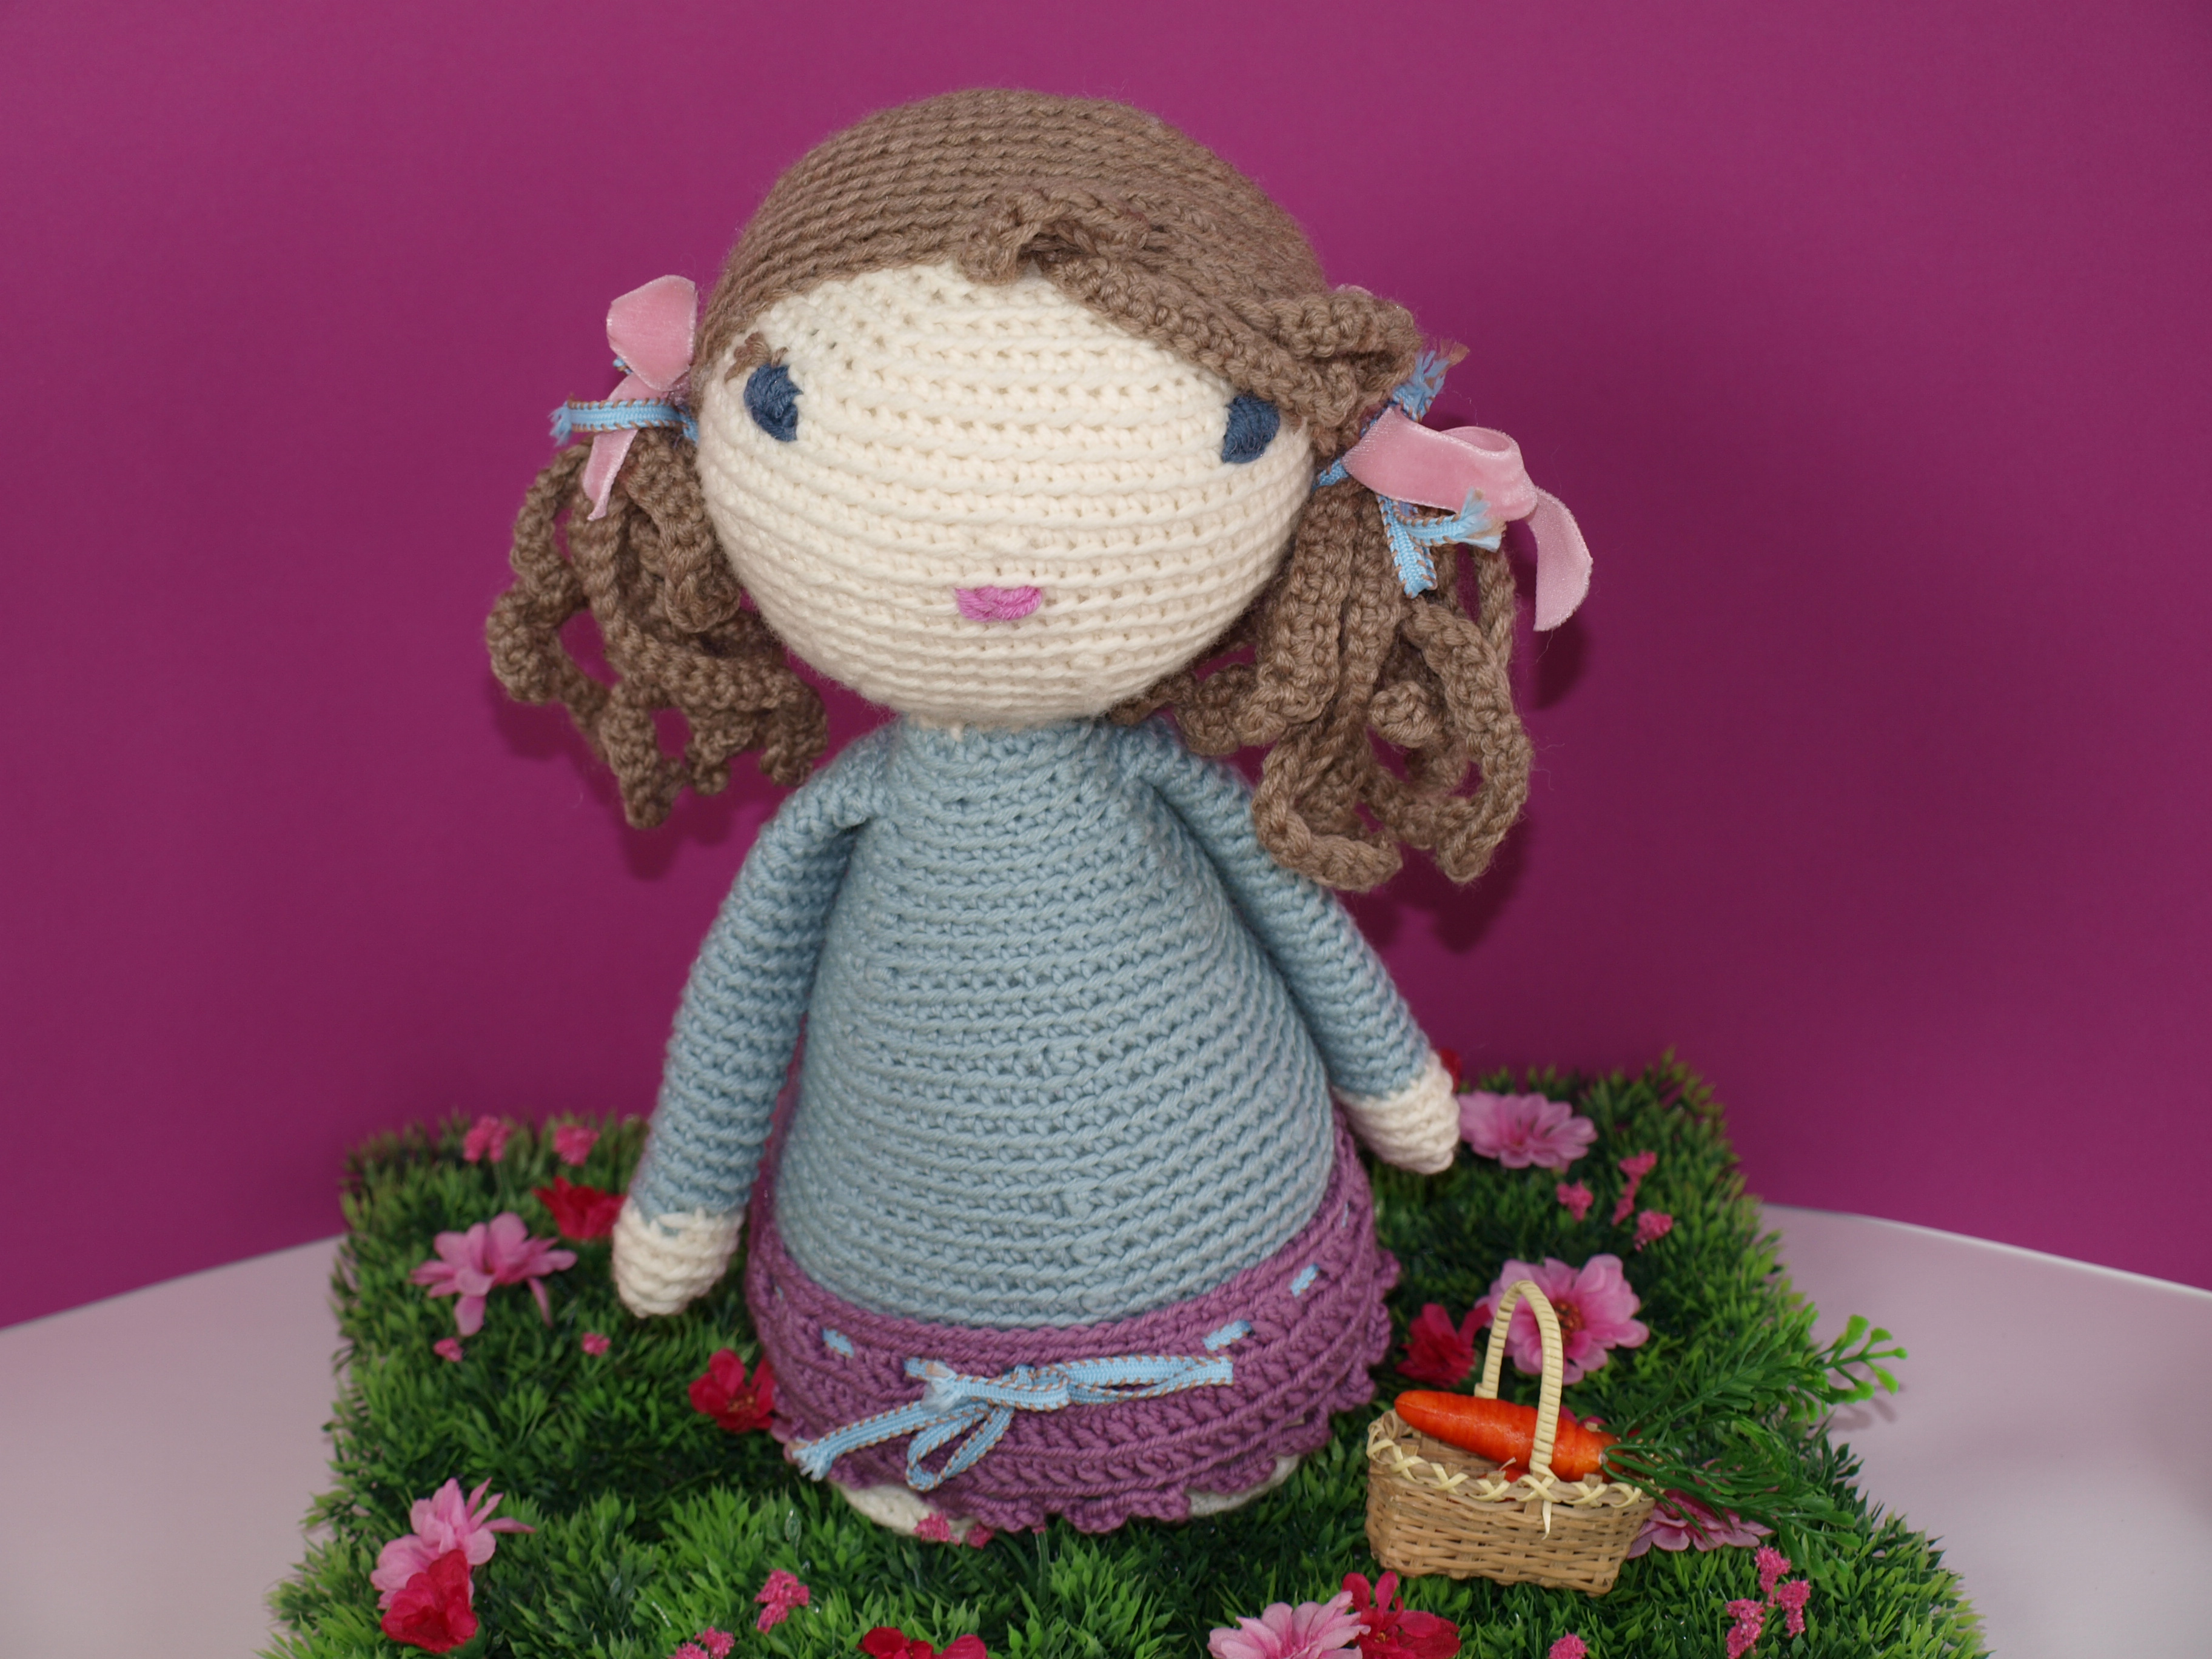 Crochet Doll Tutorial - Lucy